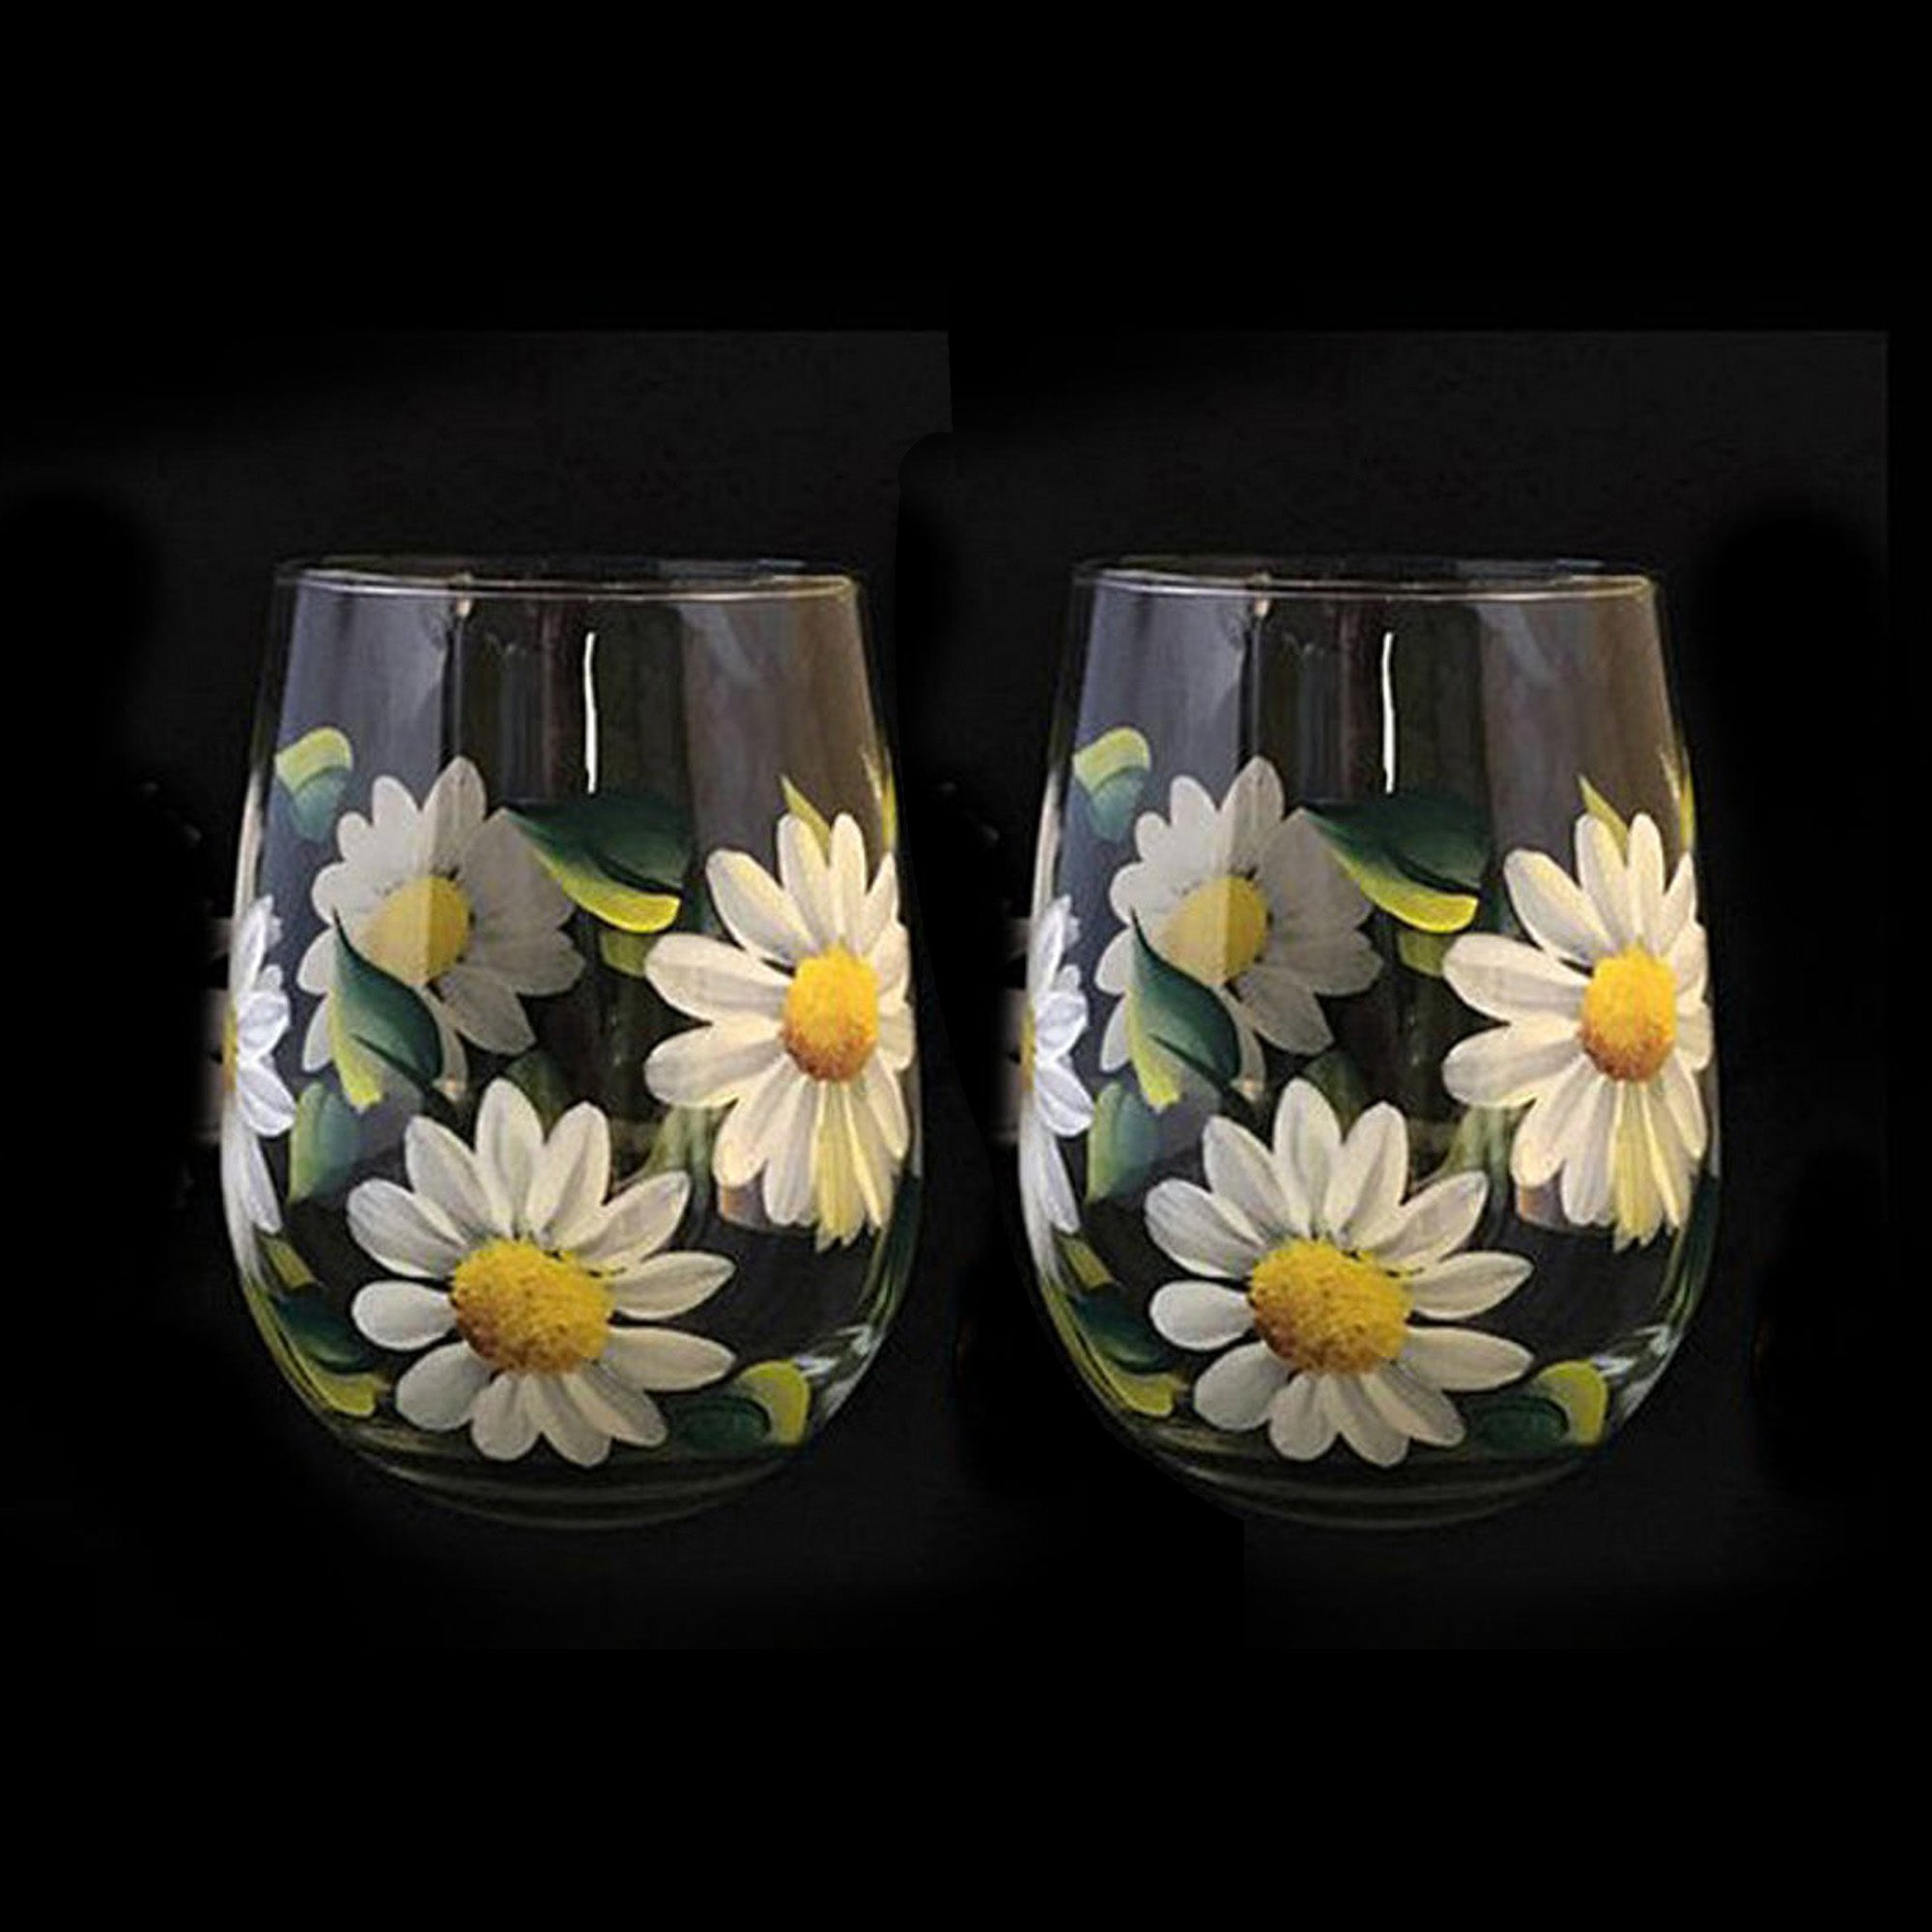 White Daisy 15 oz. Stemless Wine Glass - Set of 2 - Hand Painted